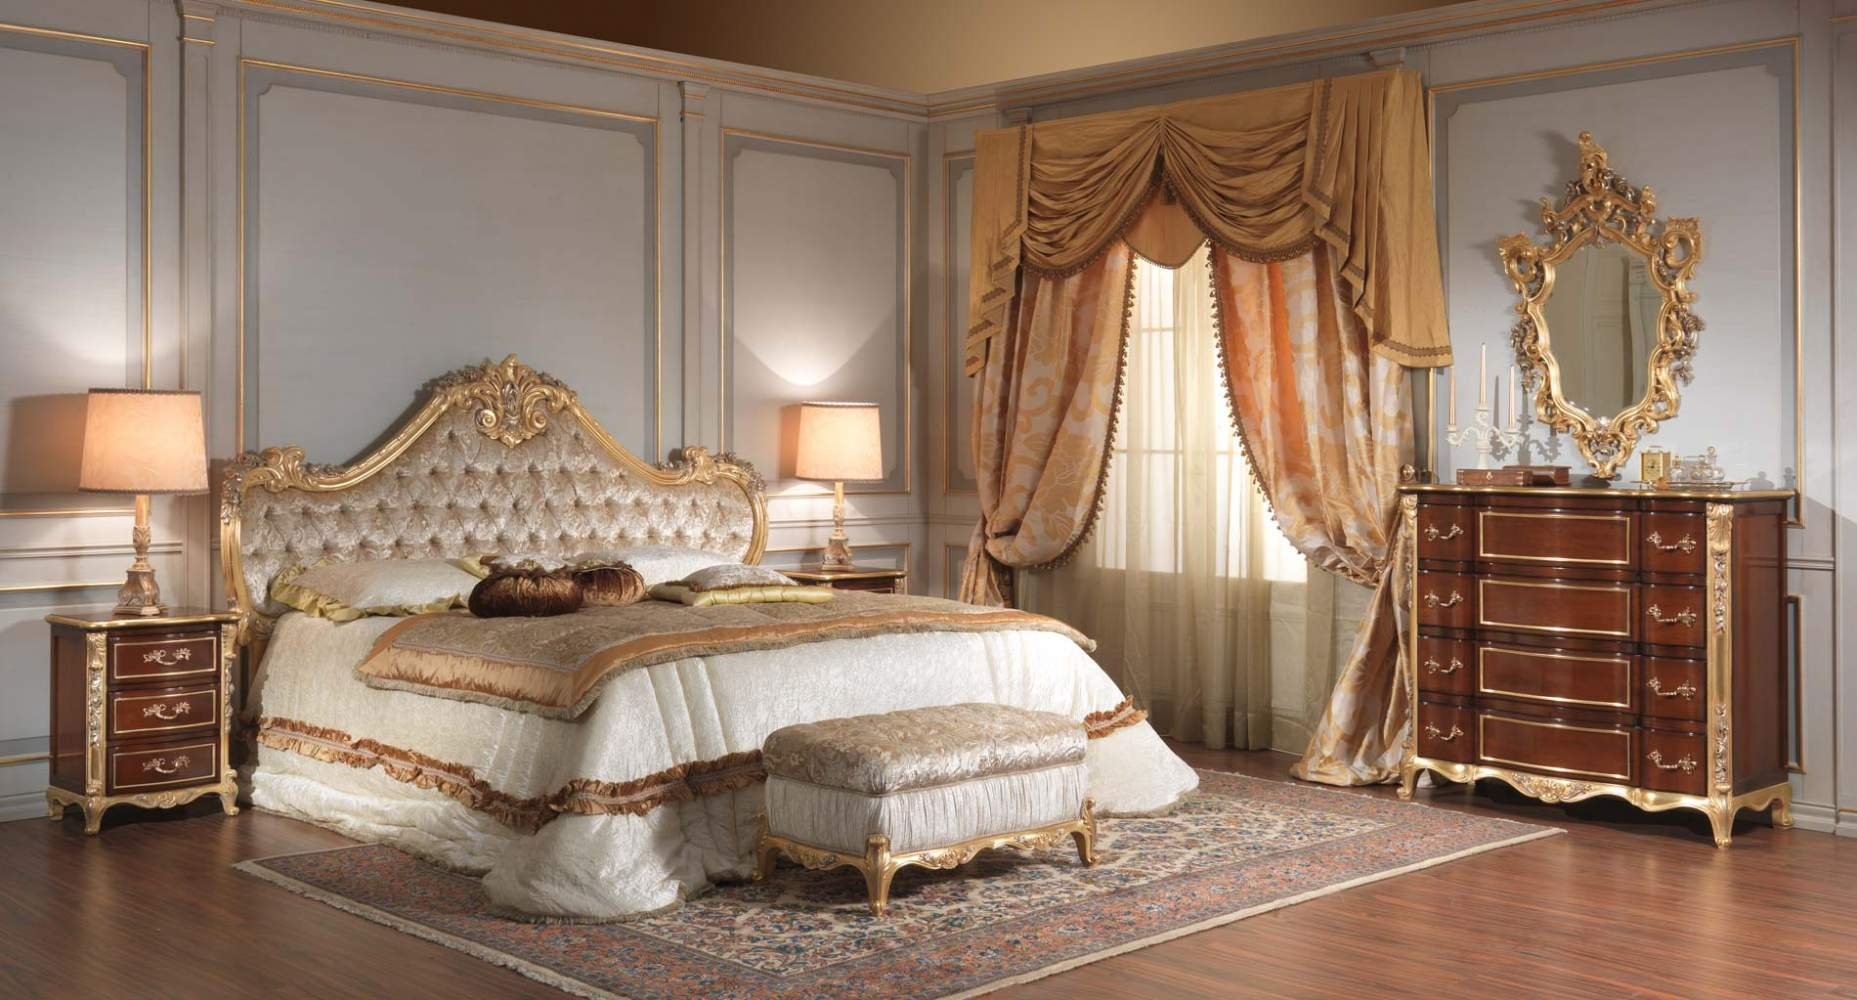 Classic Italian 18th Century Bedroom